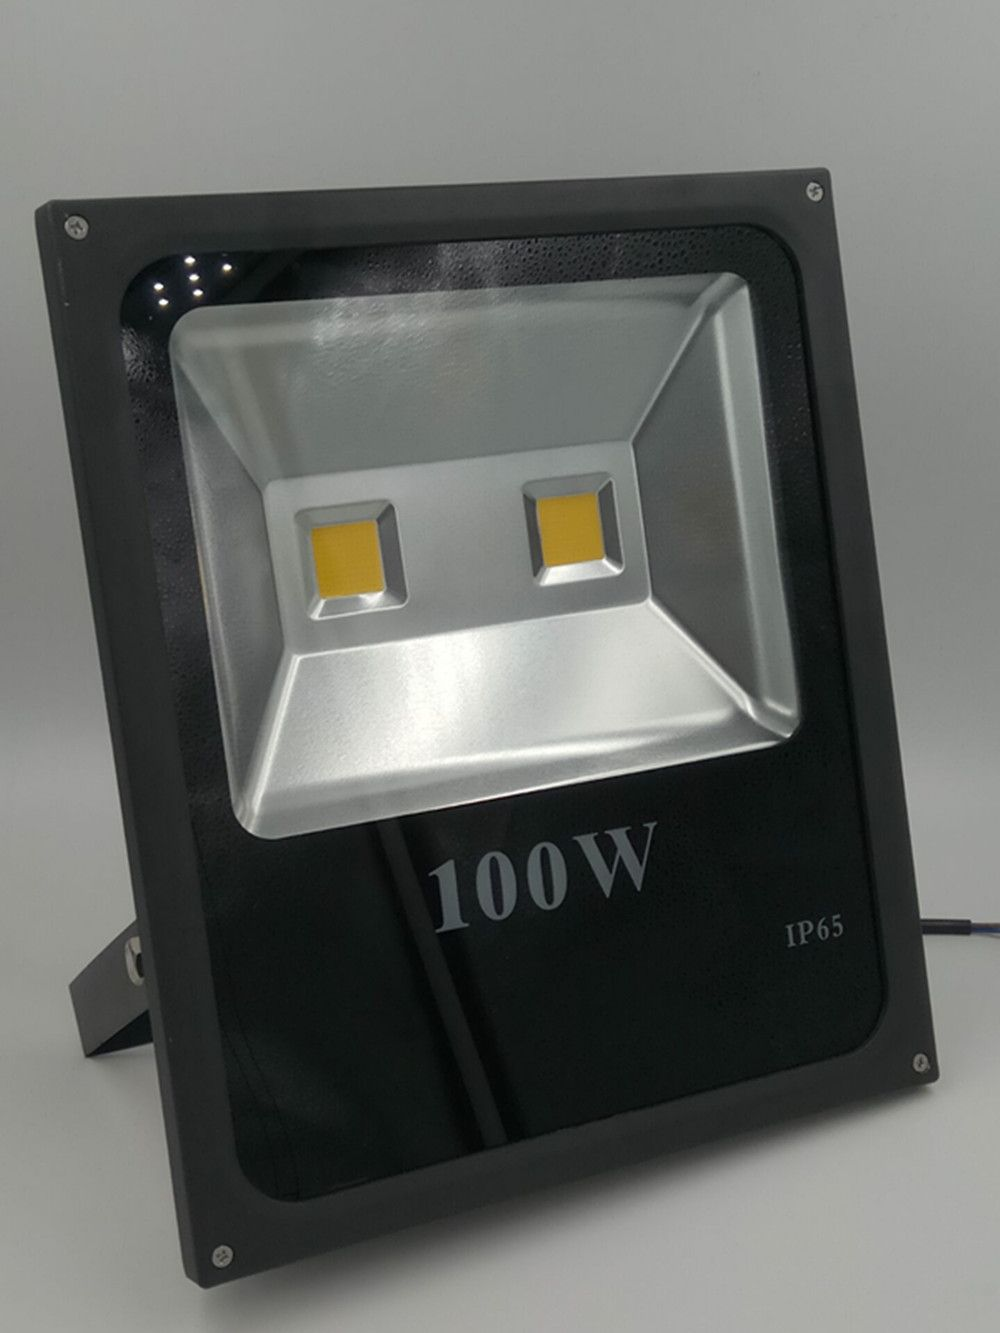 Led Outdoor Flood Light Bulbs Classy Led Flood Light 100W Led Floodlight Ip65 Waterproof 220V 110V Led Design Inspiration